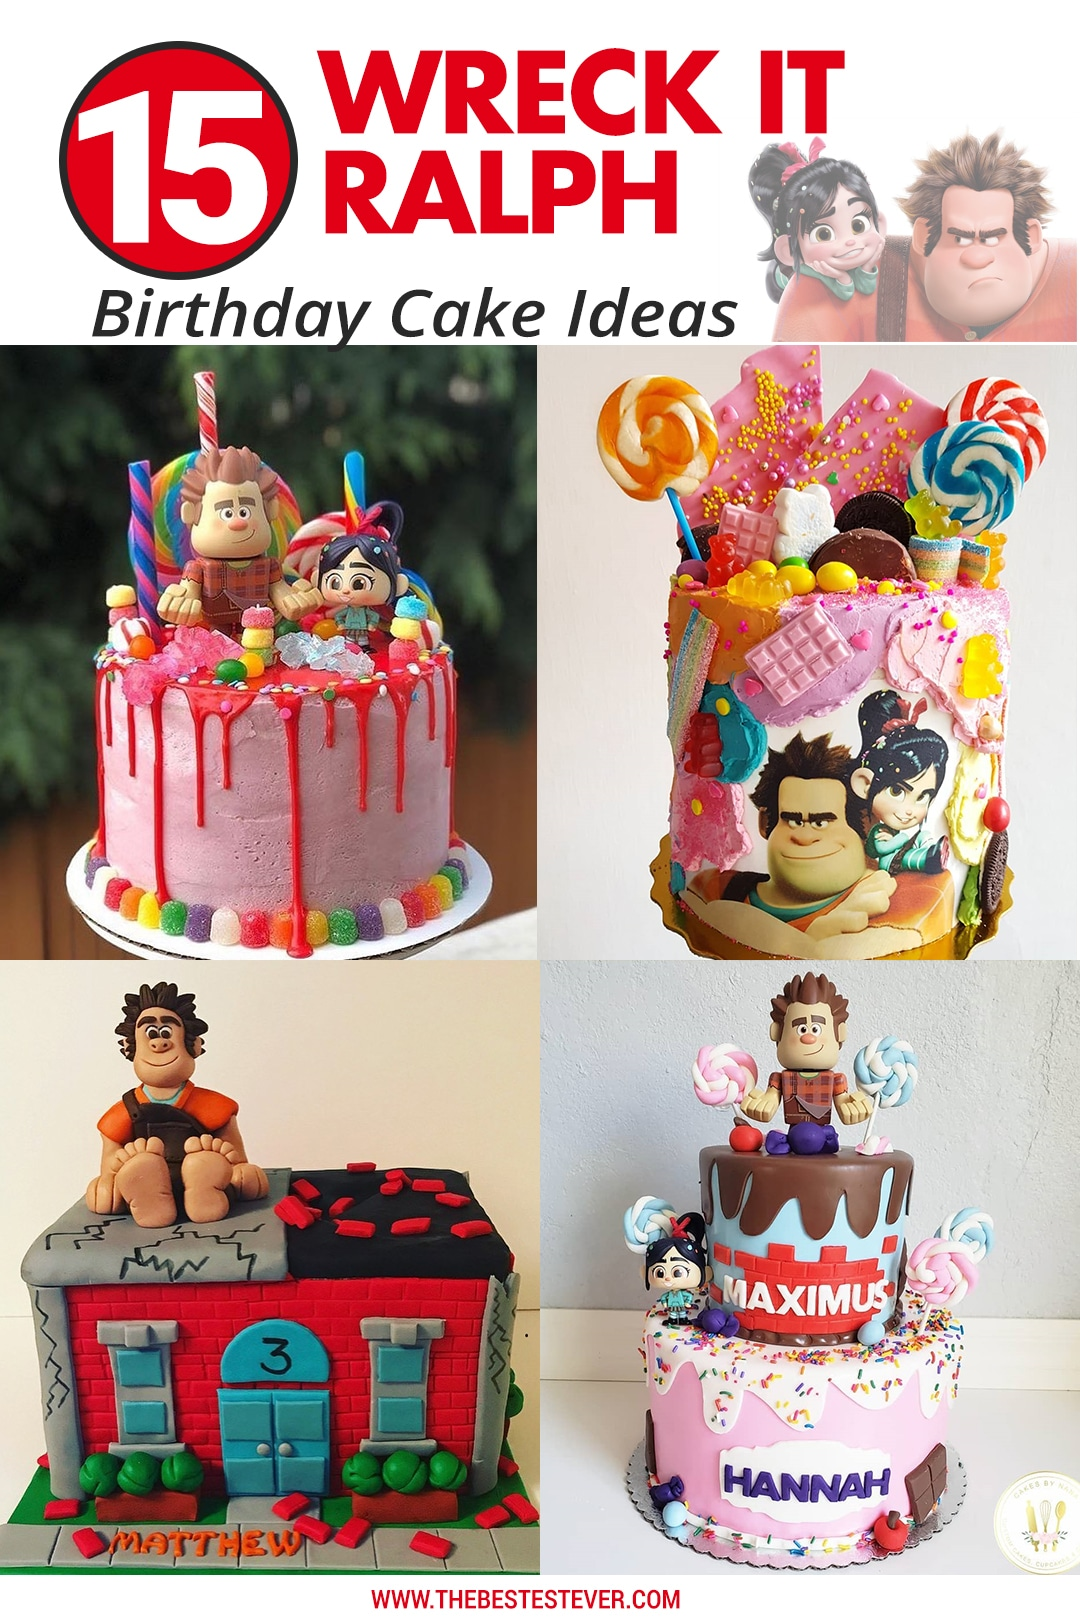 Wreck It Ralph Cake Ideas: 15 Amazing Designs